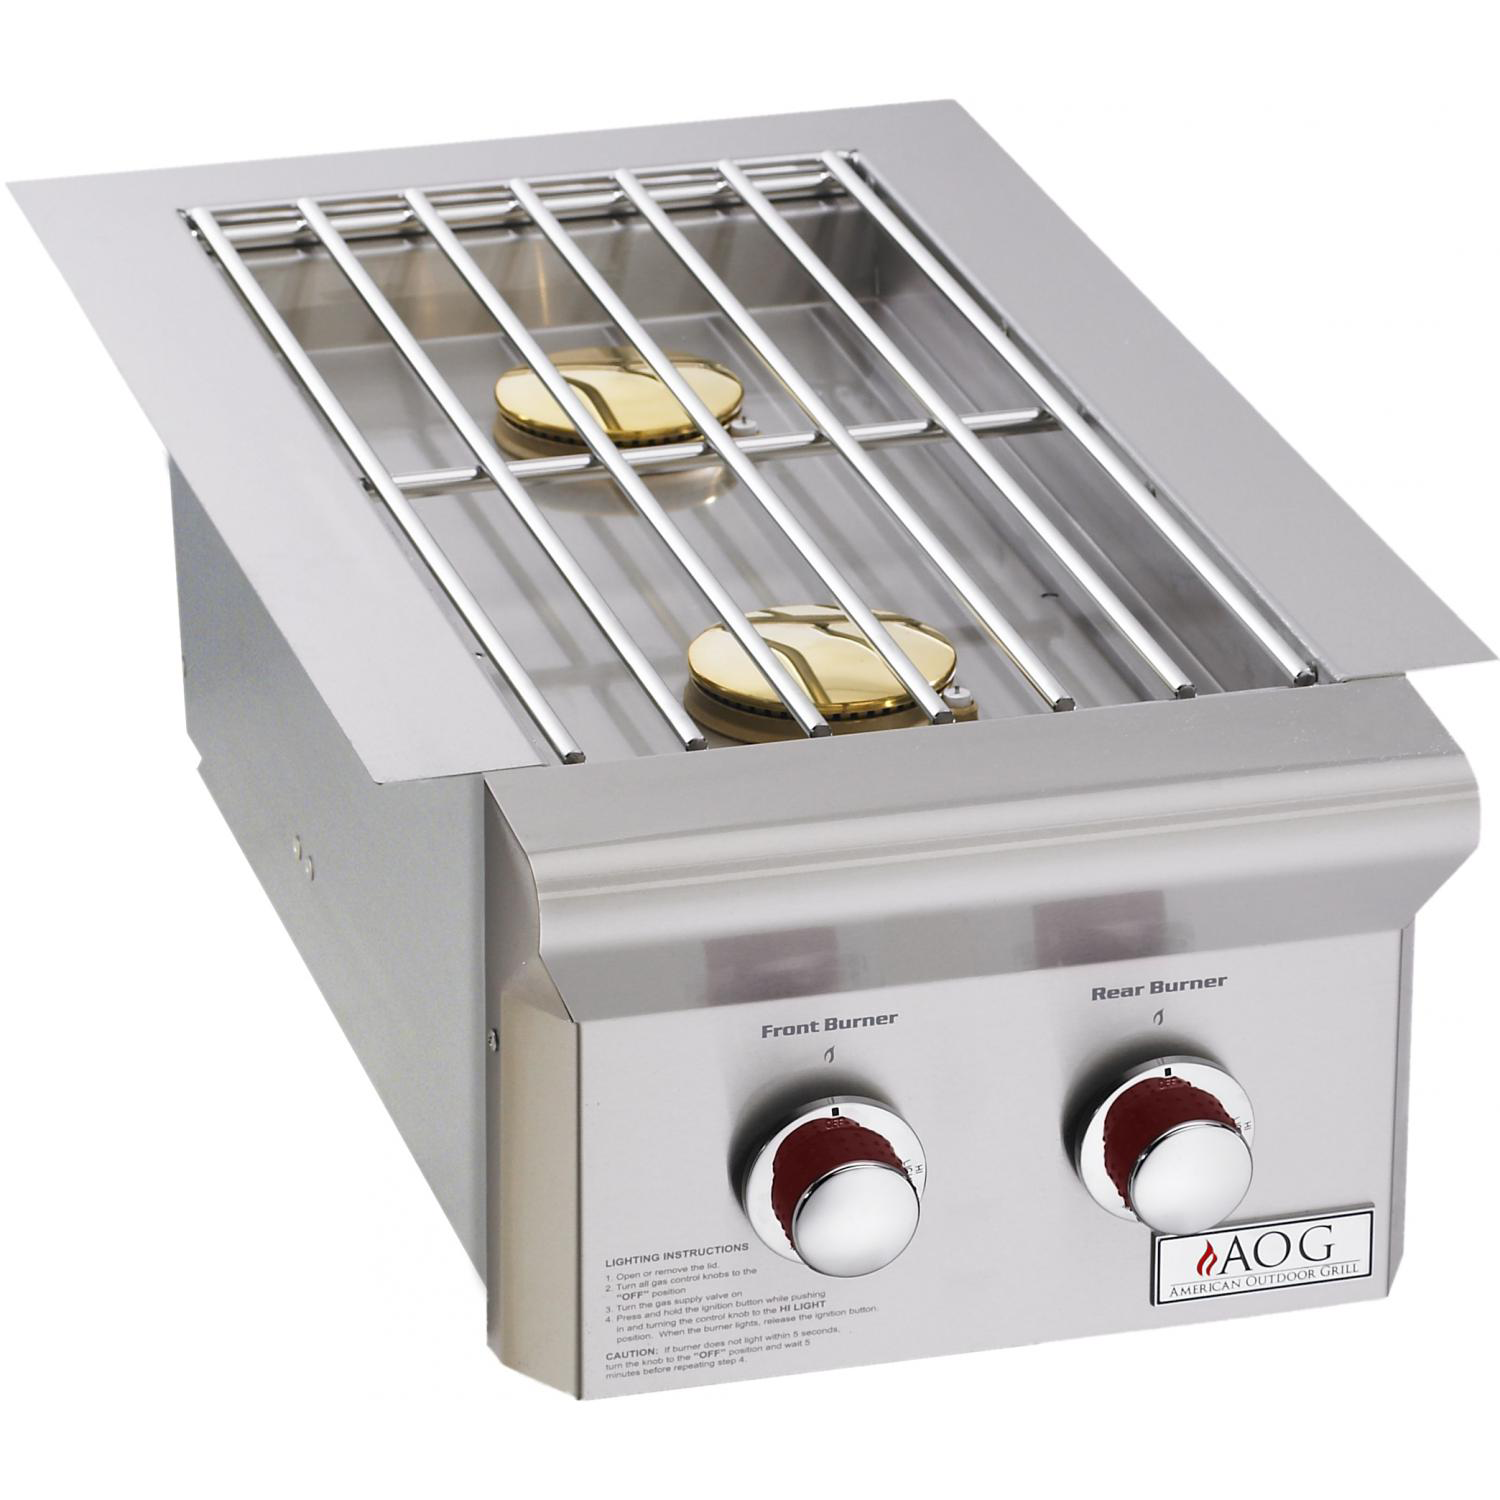 American Outdoor Grill Built-In T-Series Double Side Burner, Liquid Propane